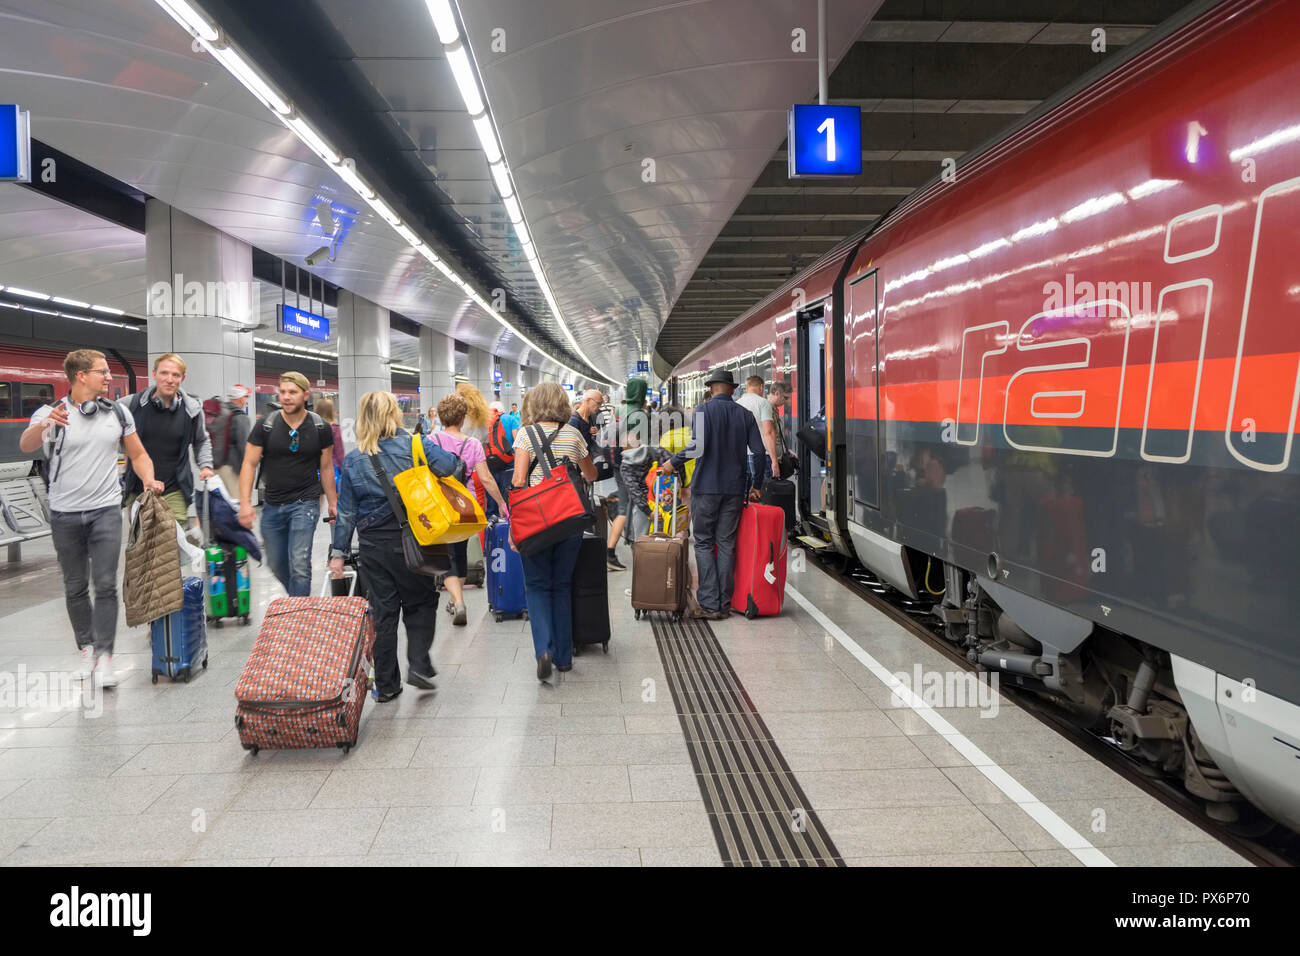 Passengers boarding a train in Vienna, Austria, Europe - Stock Image